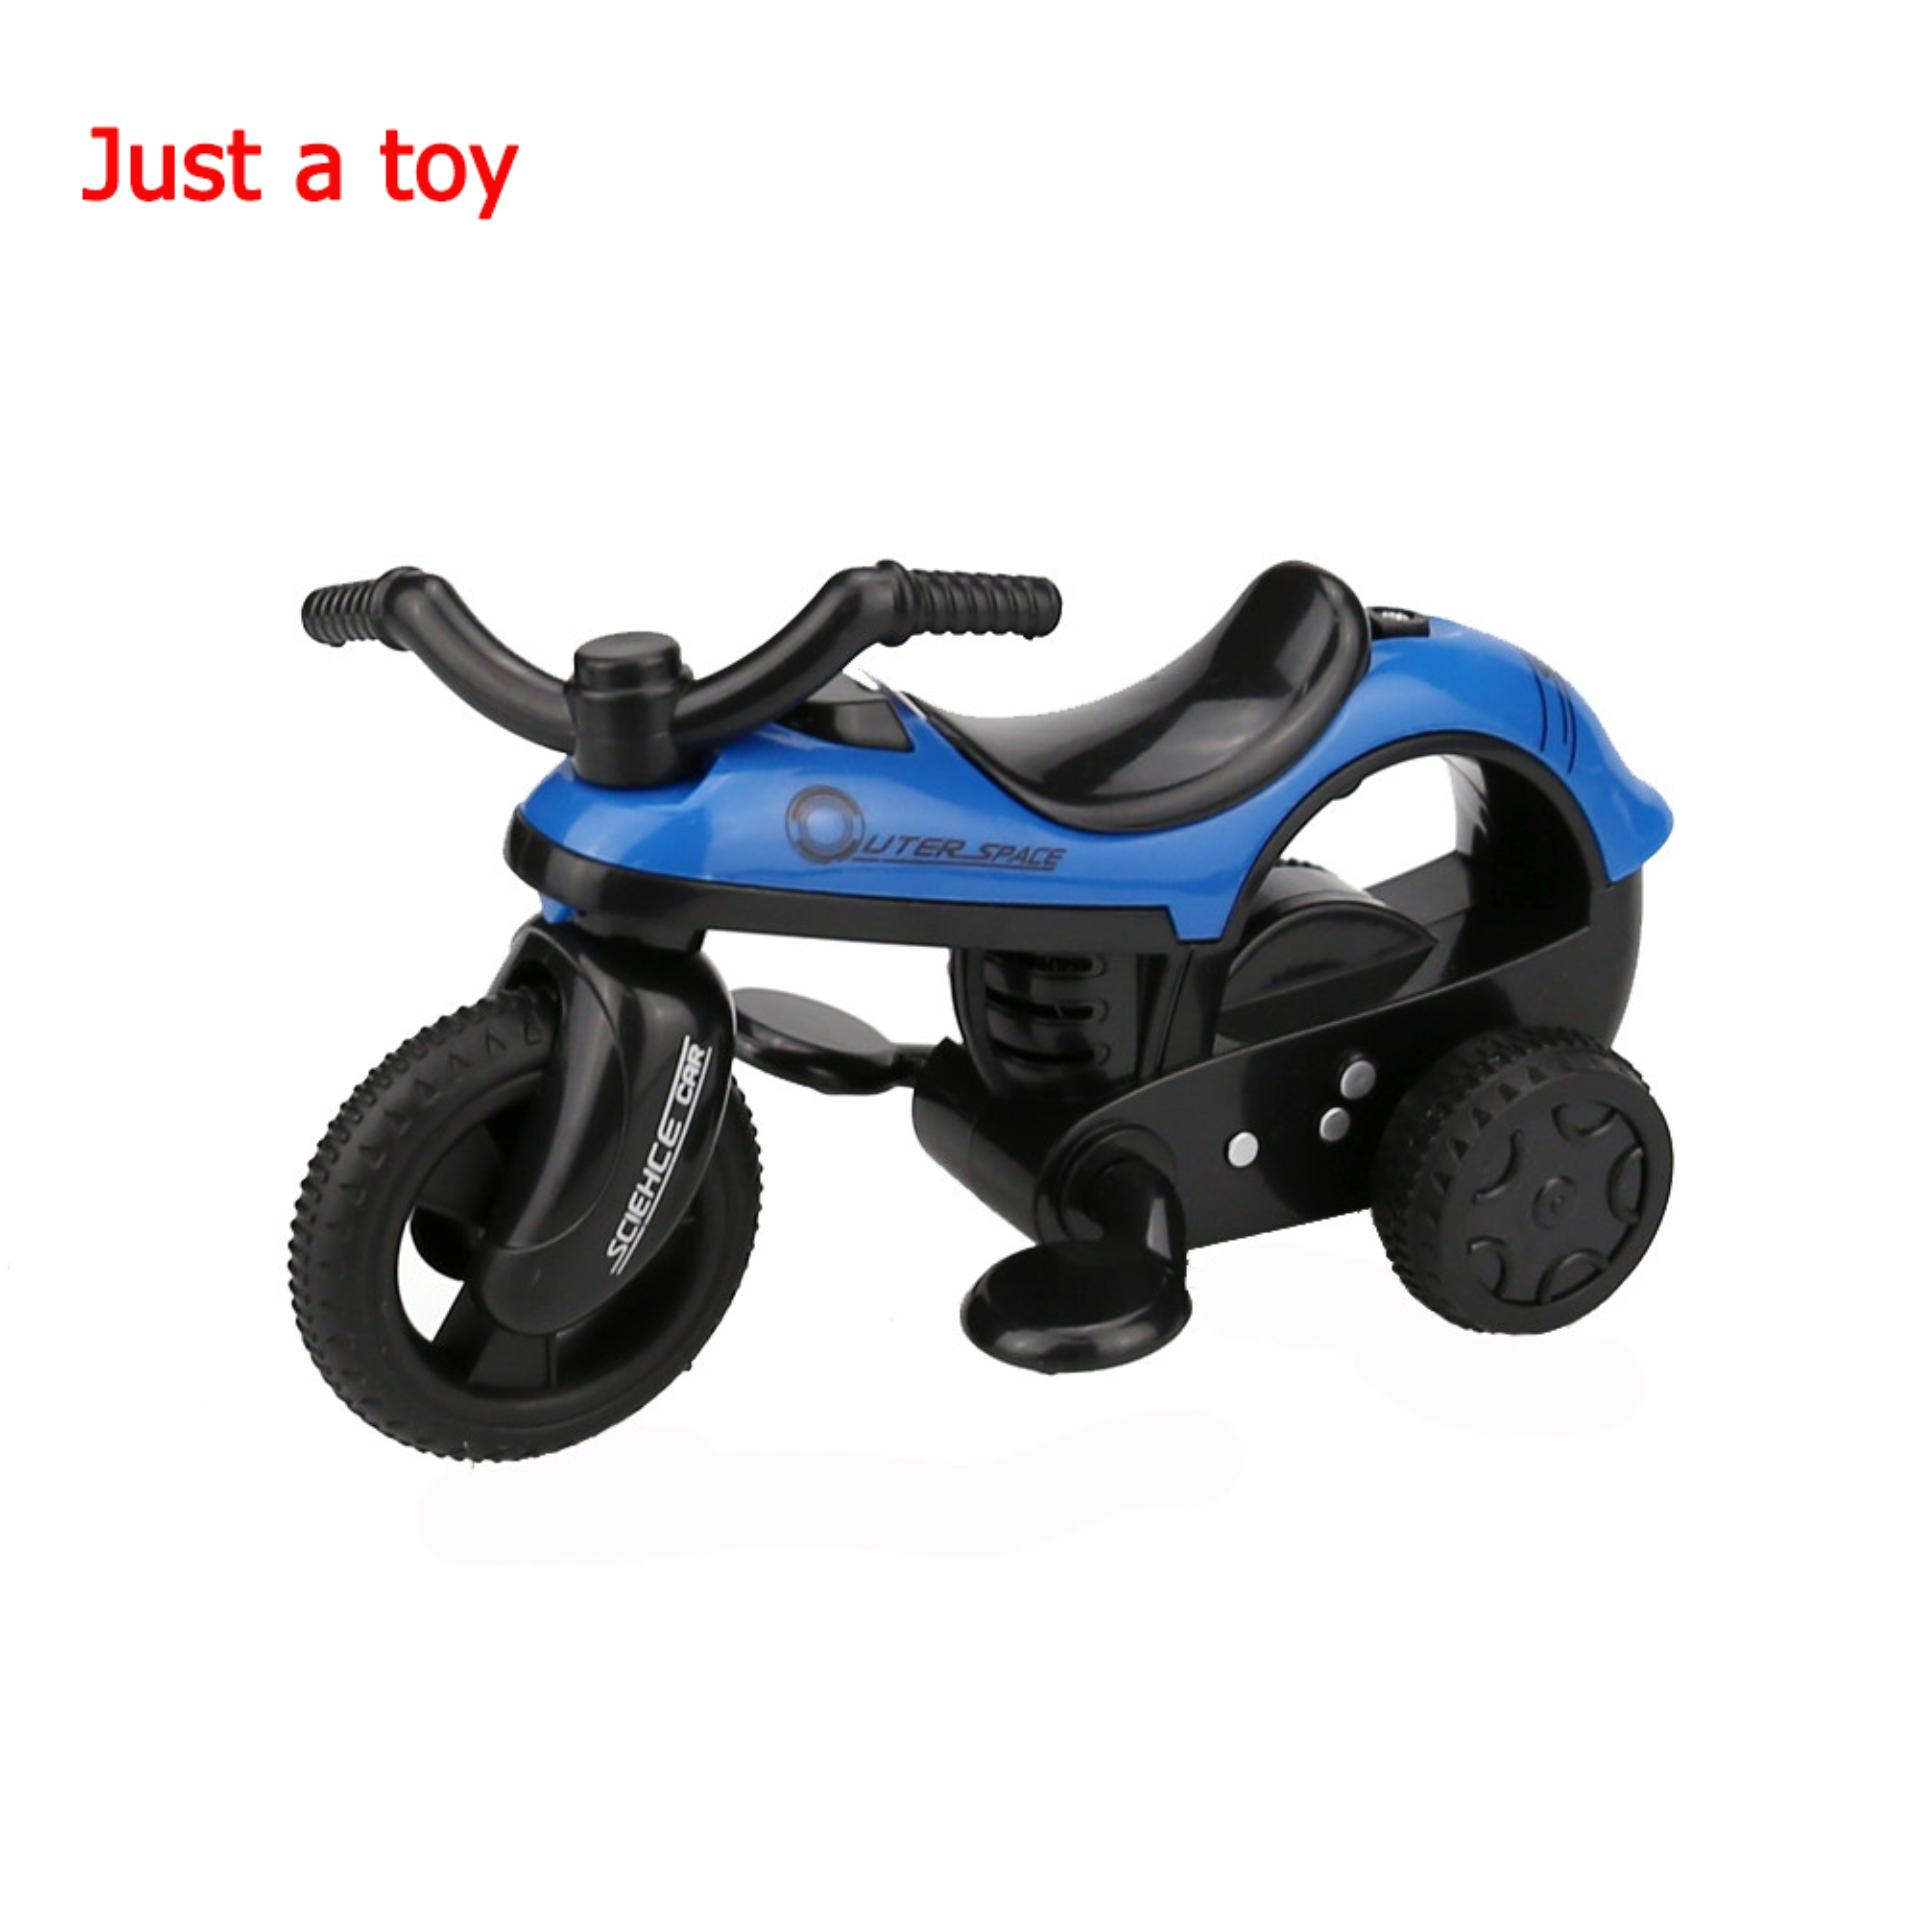 18e7d15c1 Baby Toys for sale - Toddler Toys online brands, prices & reviews in ...